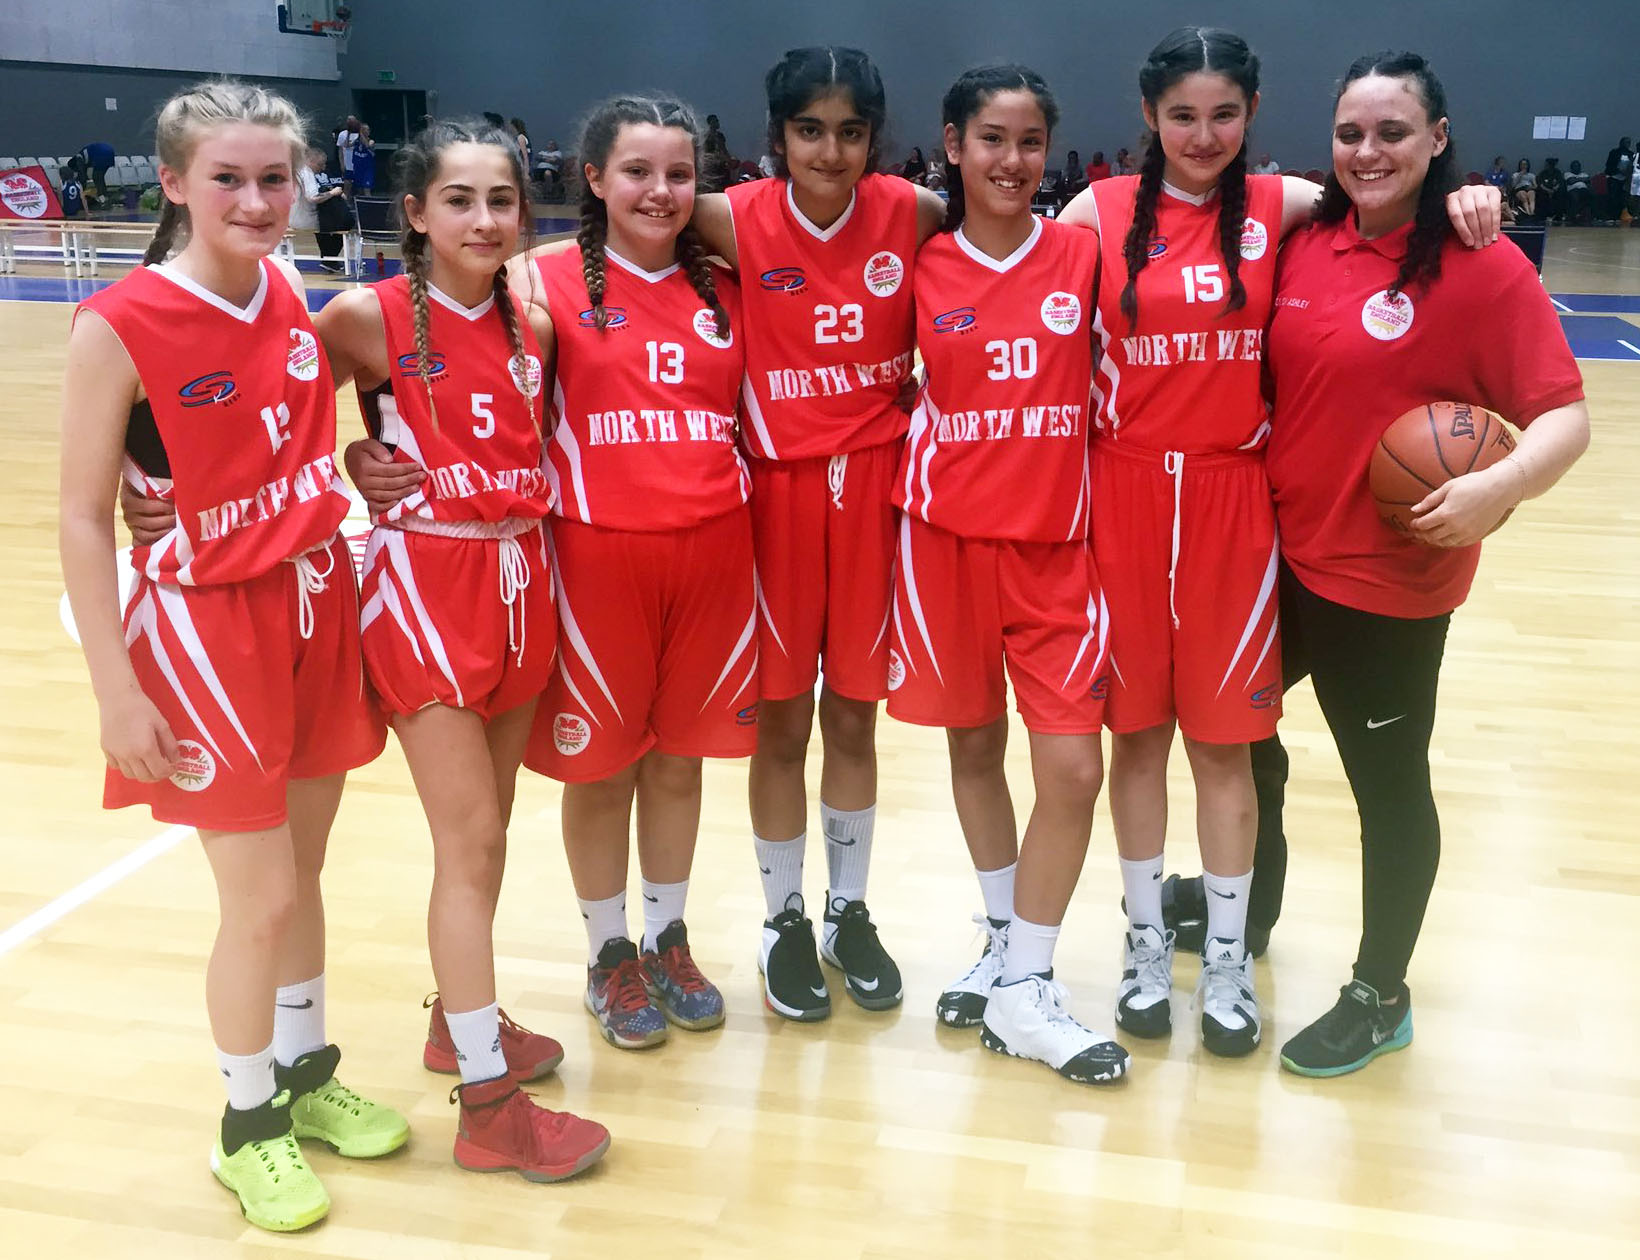 Manchester Mystics U13 North West Team 2017